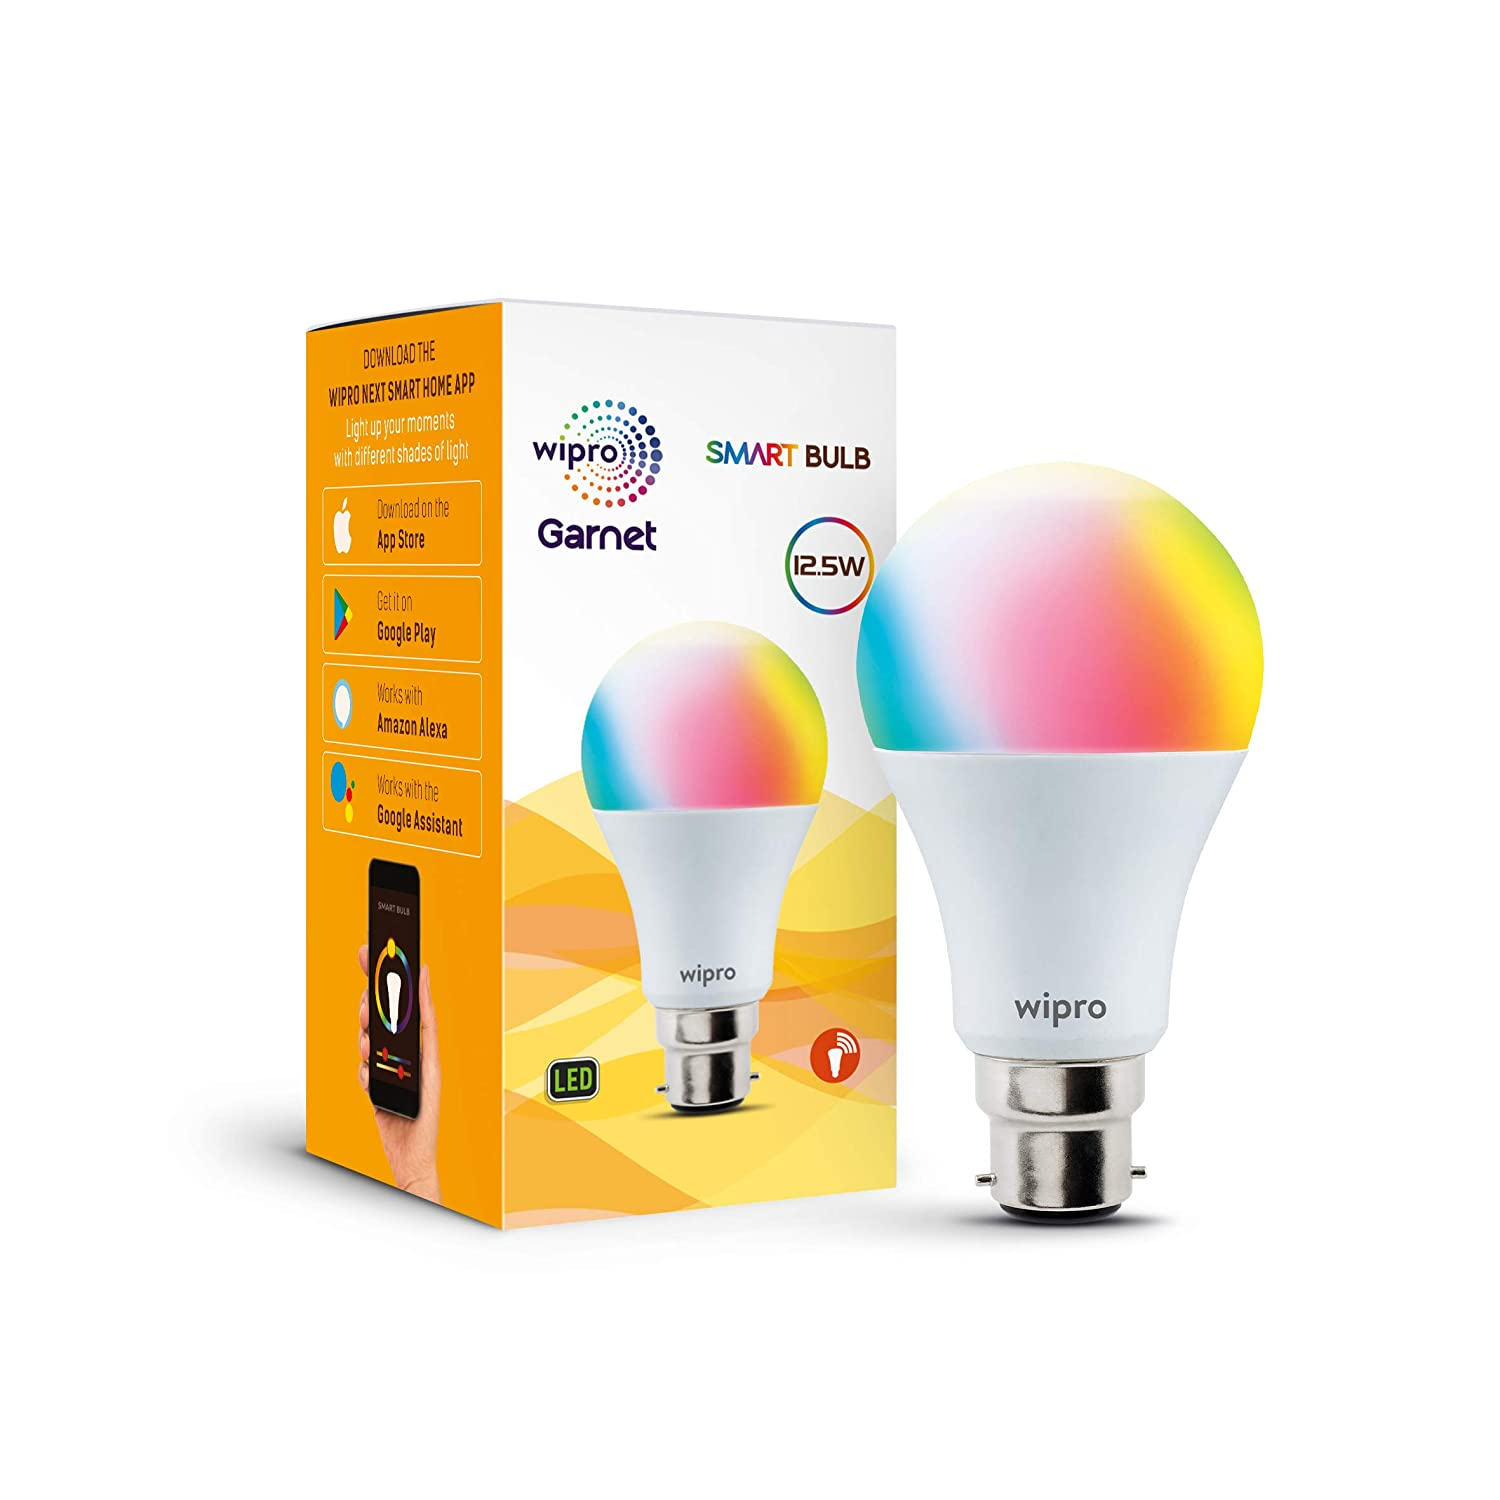 wipro WiFi Enabled Smart LED Bulb B22 12.5-Watt (16 Million Colors + Warm White/Neutral White/White) (Compatible with Amazon Alexa and Google Assistan